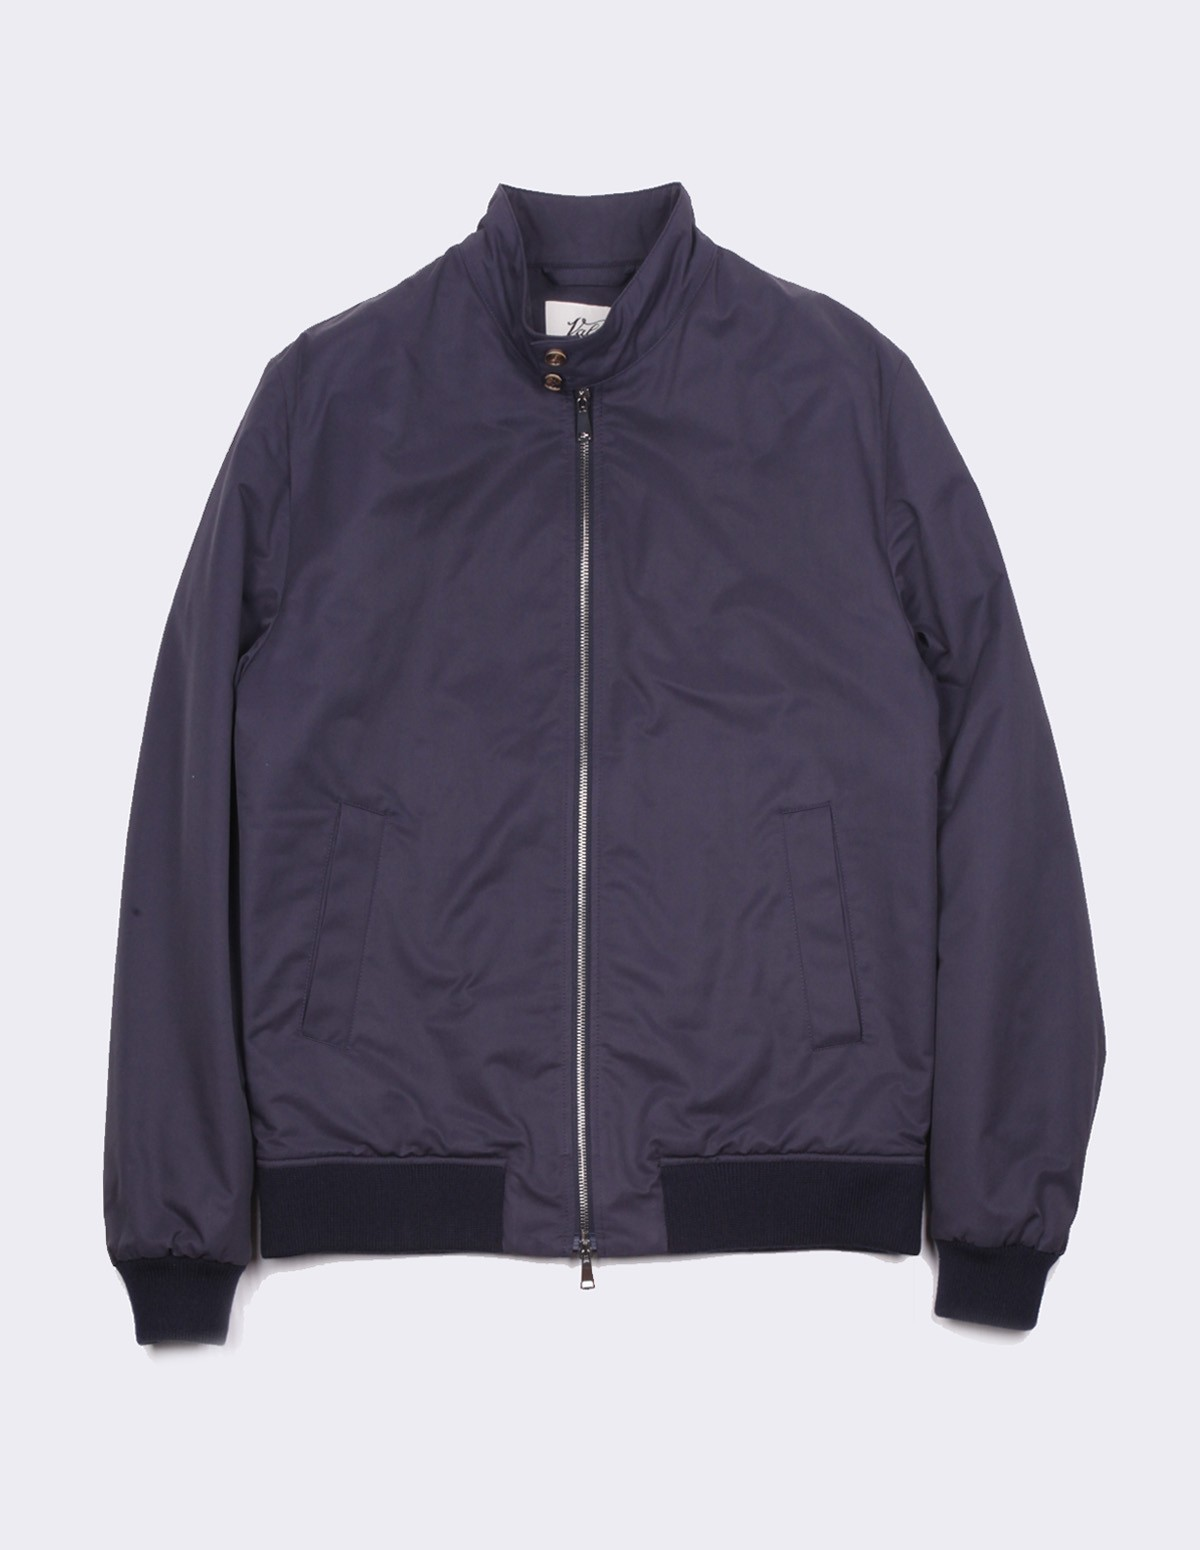 Valstar Zip Jacket Cotton - NAVY